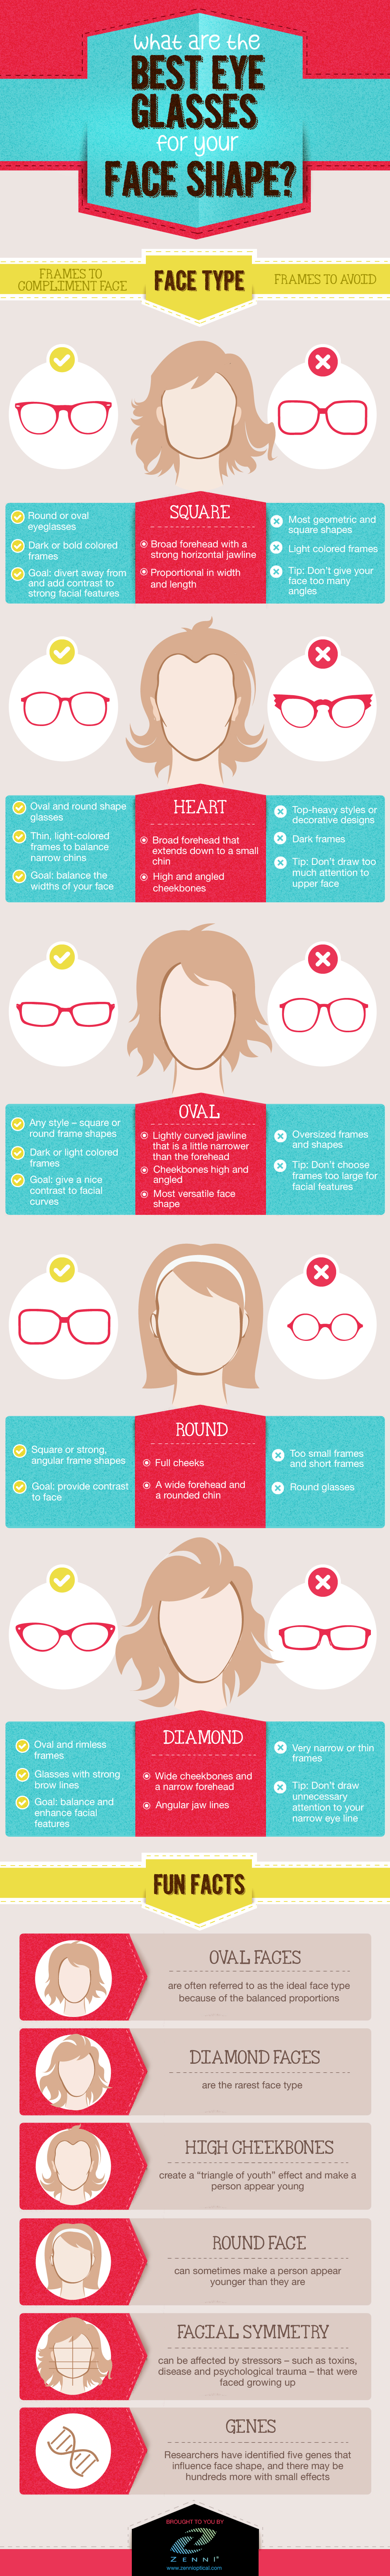 Here's How You Choose Spectacles For Your Face Type - Infographic